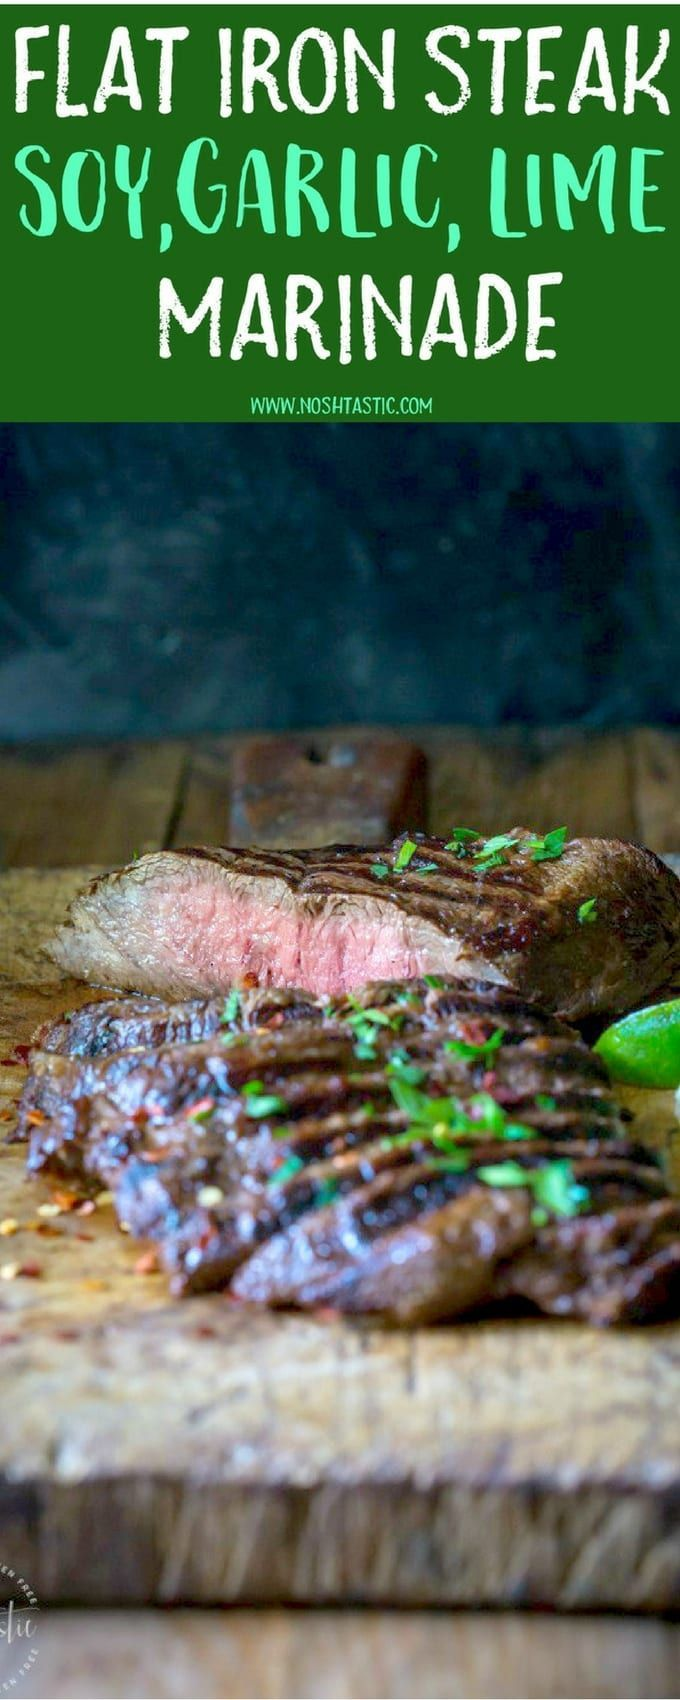 This marinaded Grilled Flat Iron Steak is so simple to prepare and just melts in your mouth! marinated in lime juice, soy sauce and garlic | Gluten Free with Paleo and whole30 Options |